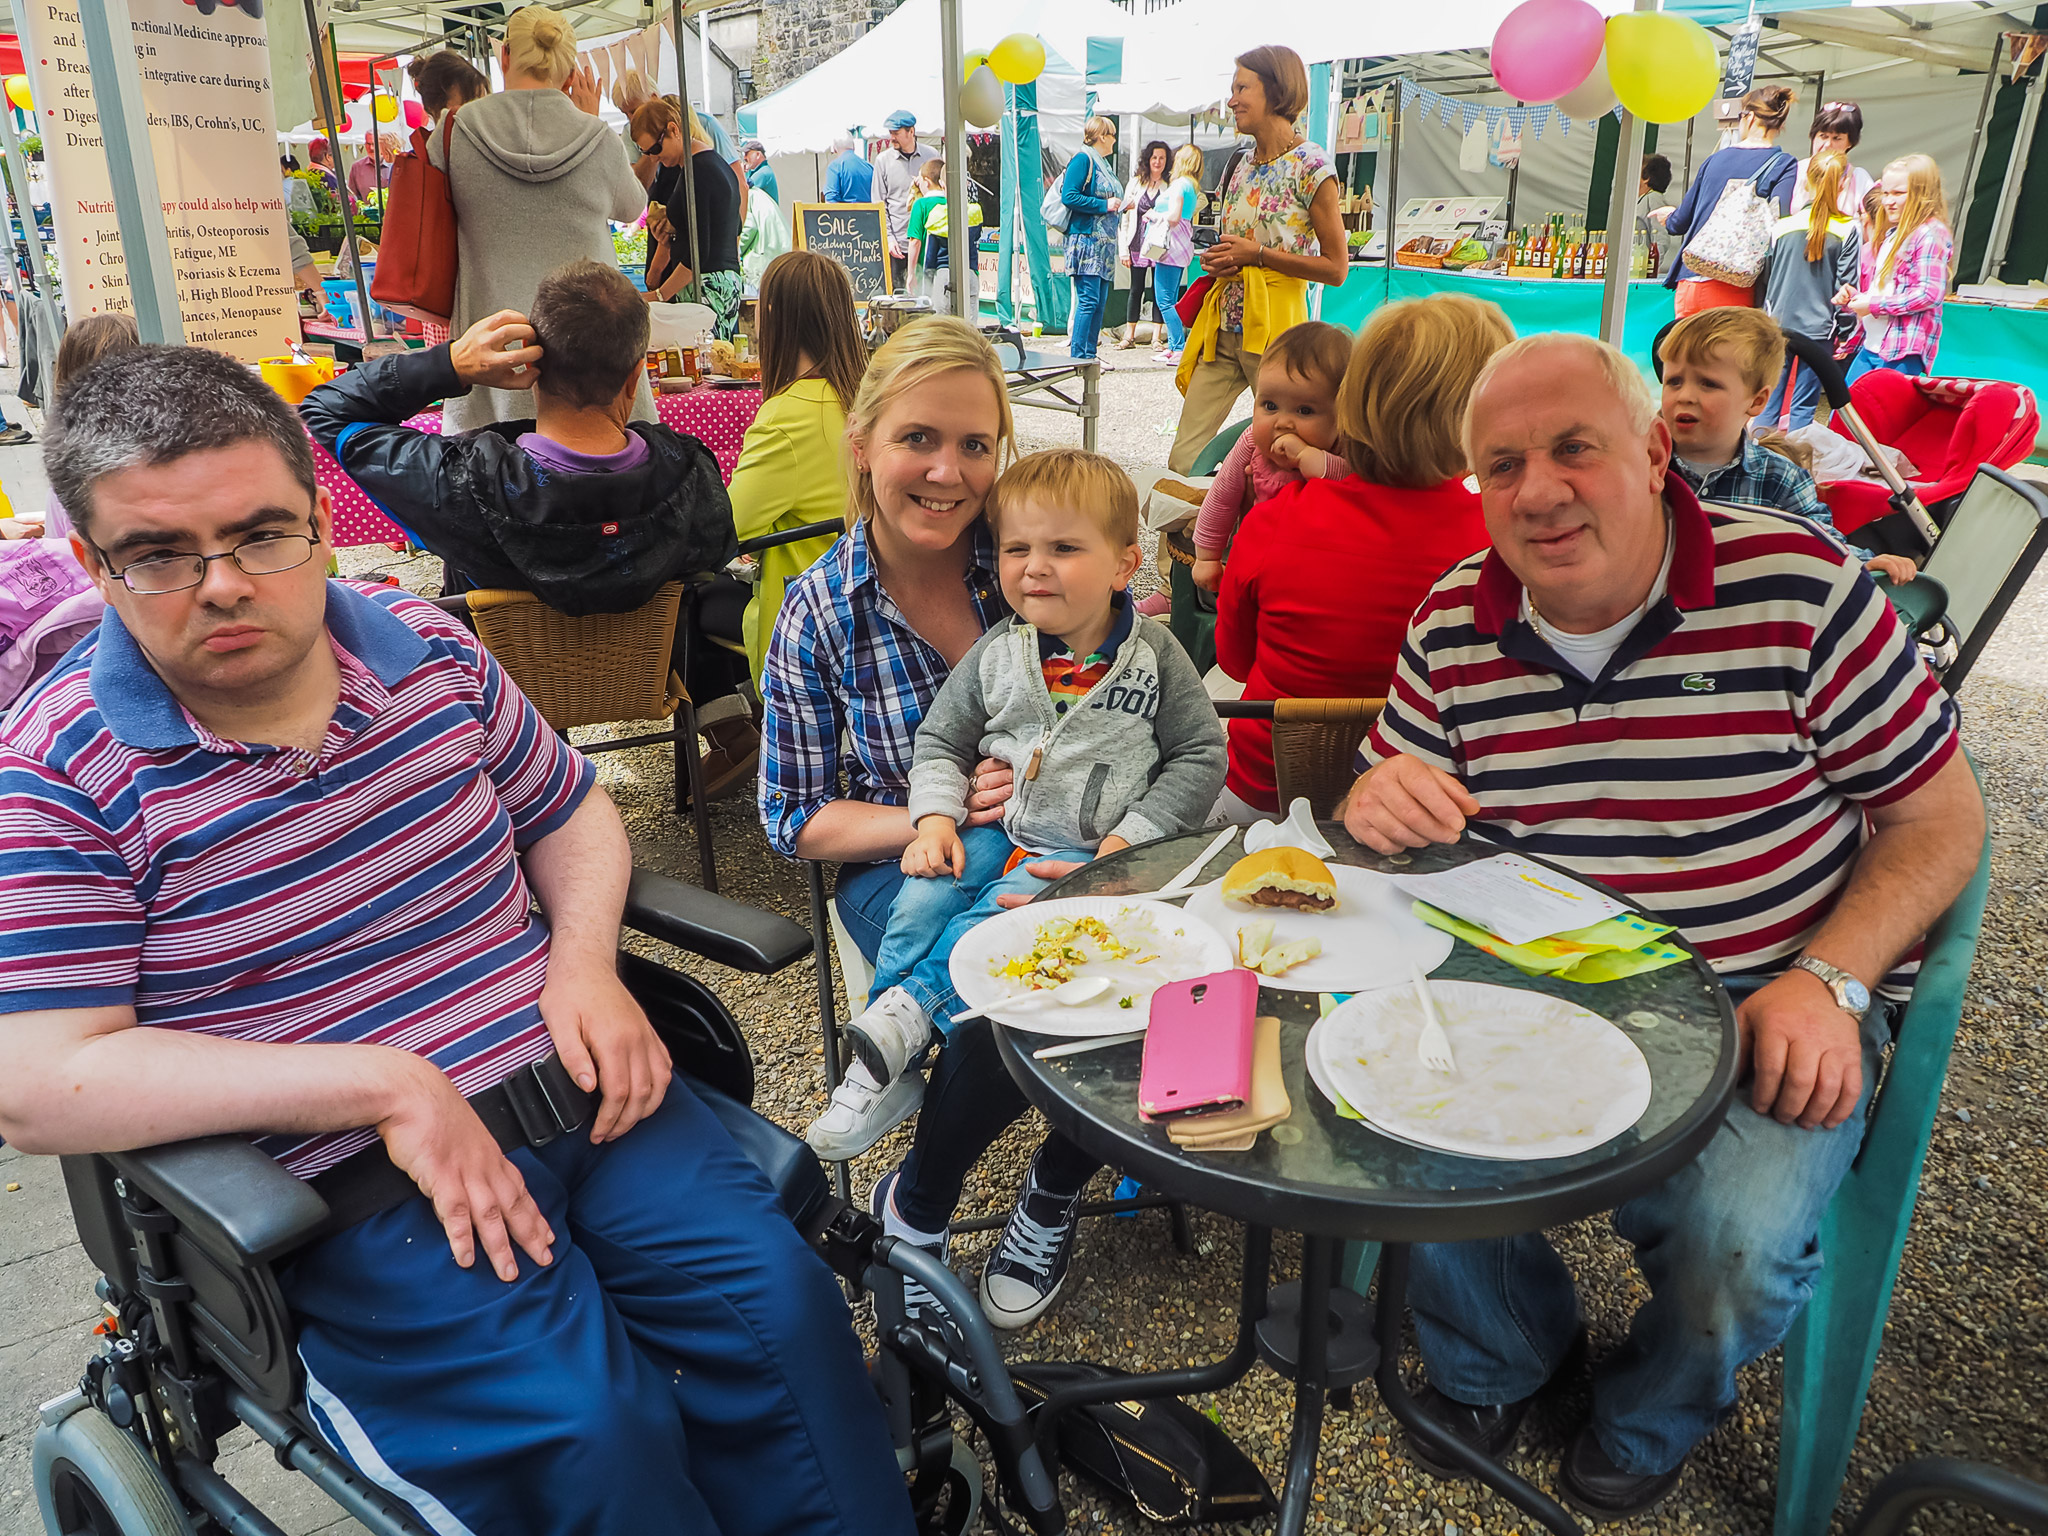 Enjoying the sun at our Festival of Food 18th June '16, Boyle Courtyard Market, County Roscommon.